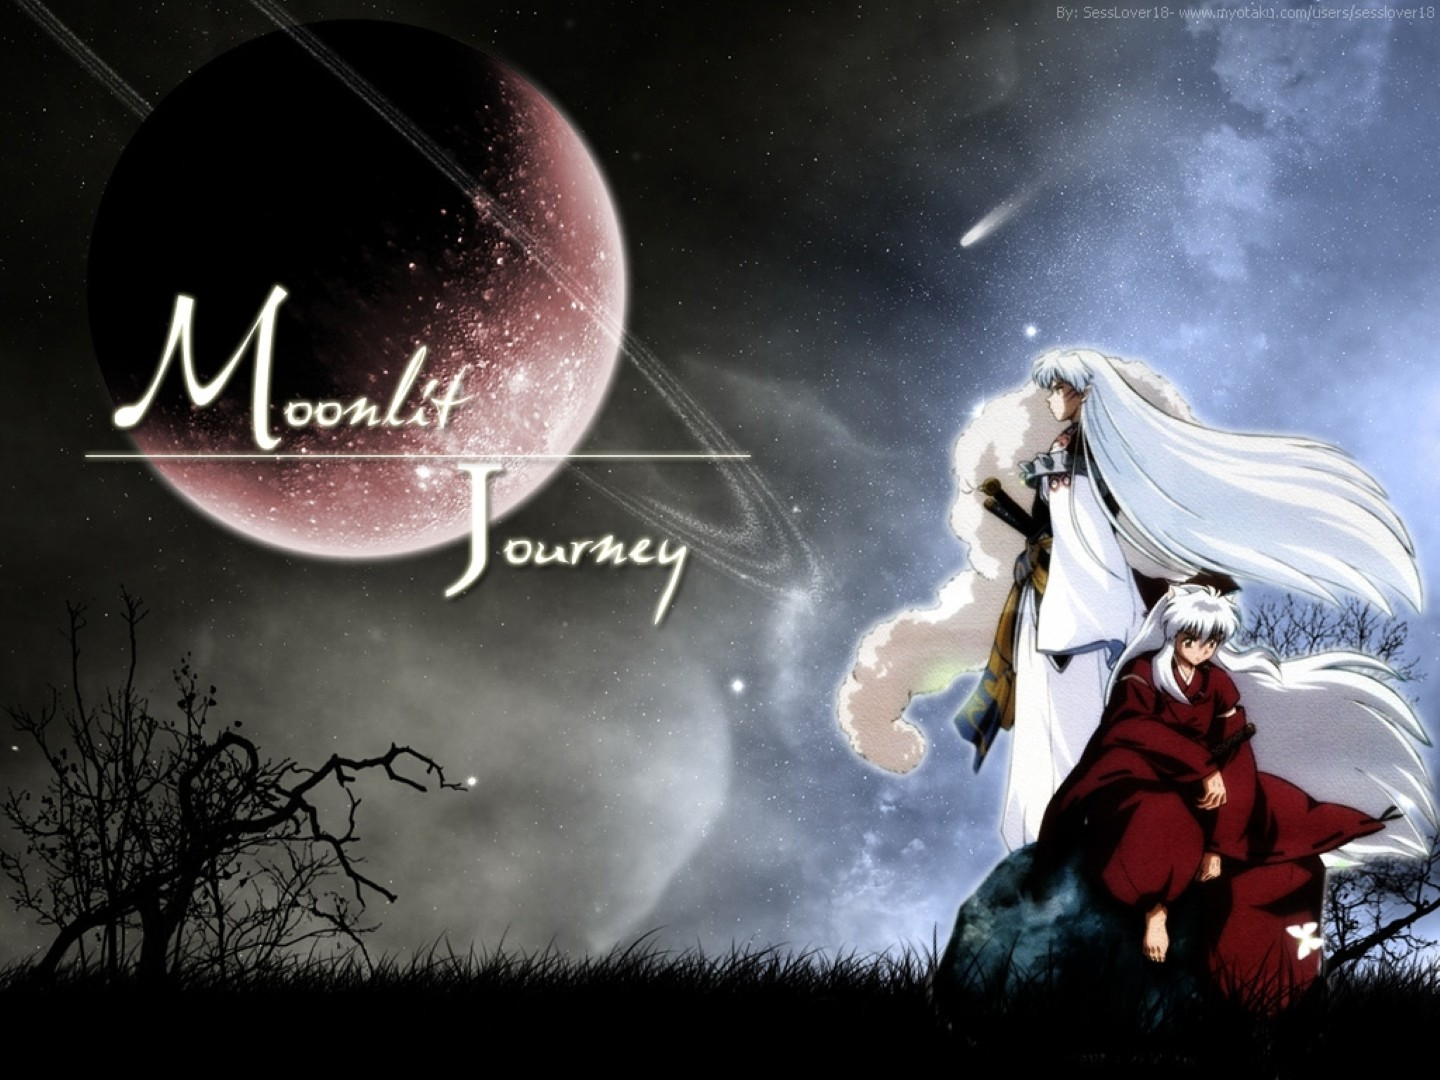 inuyasha images inuyasha and sesshomaru hd wallpaper and